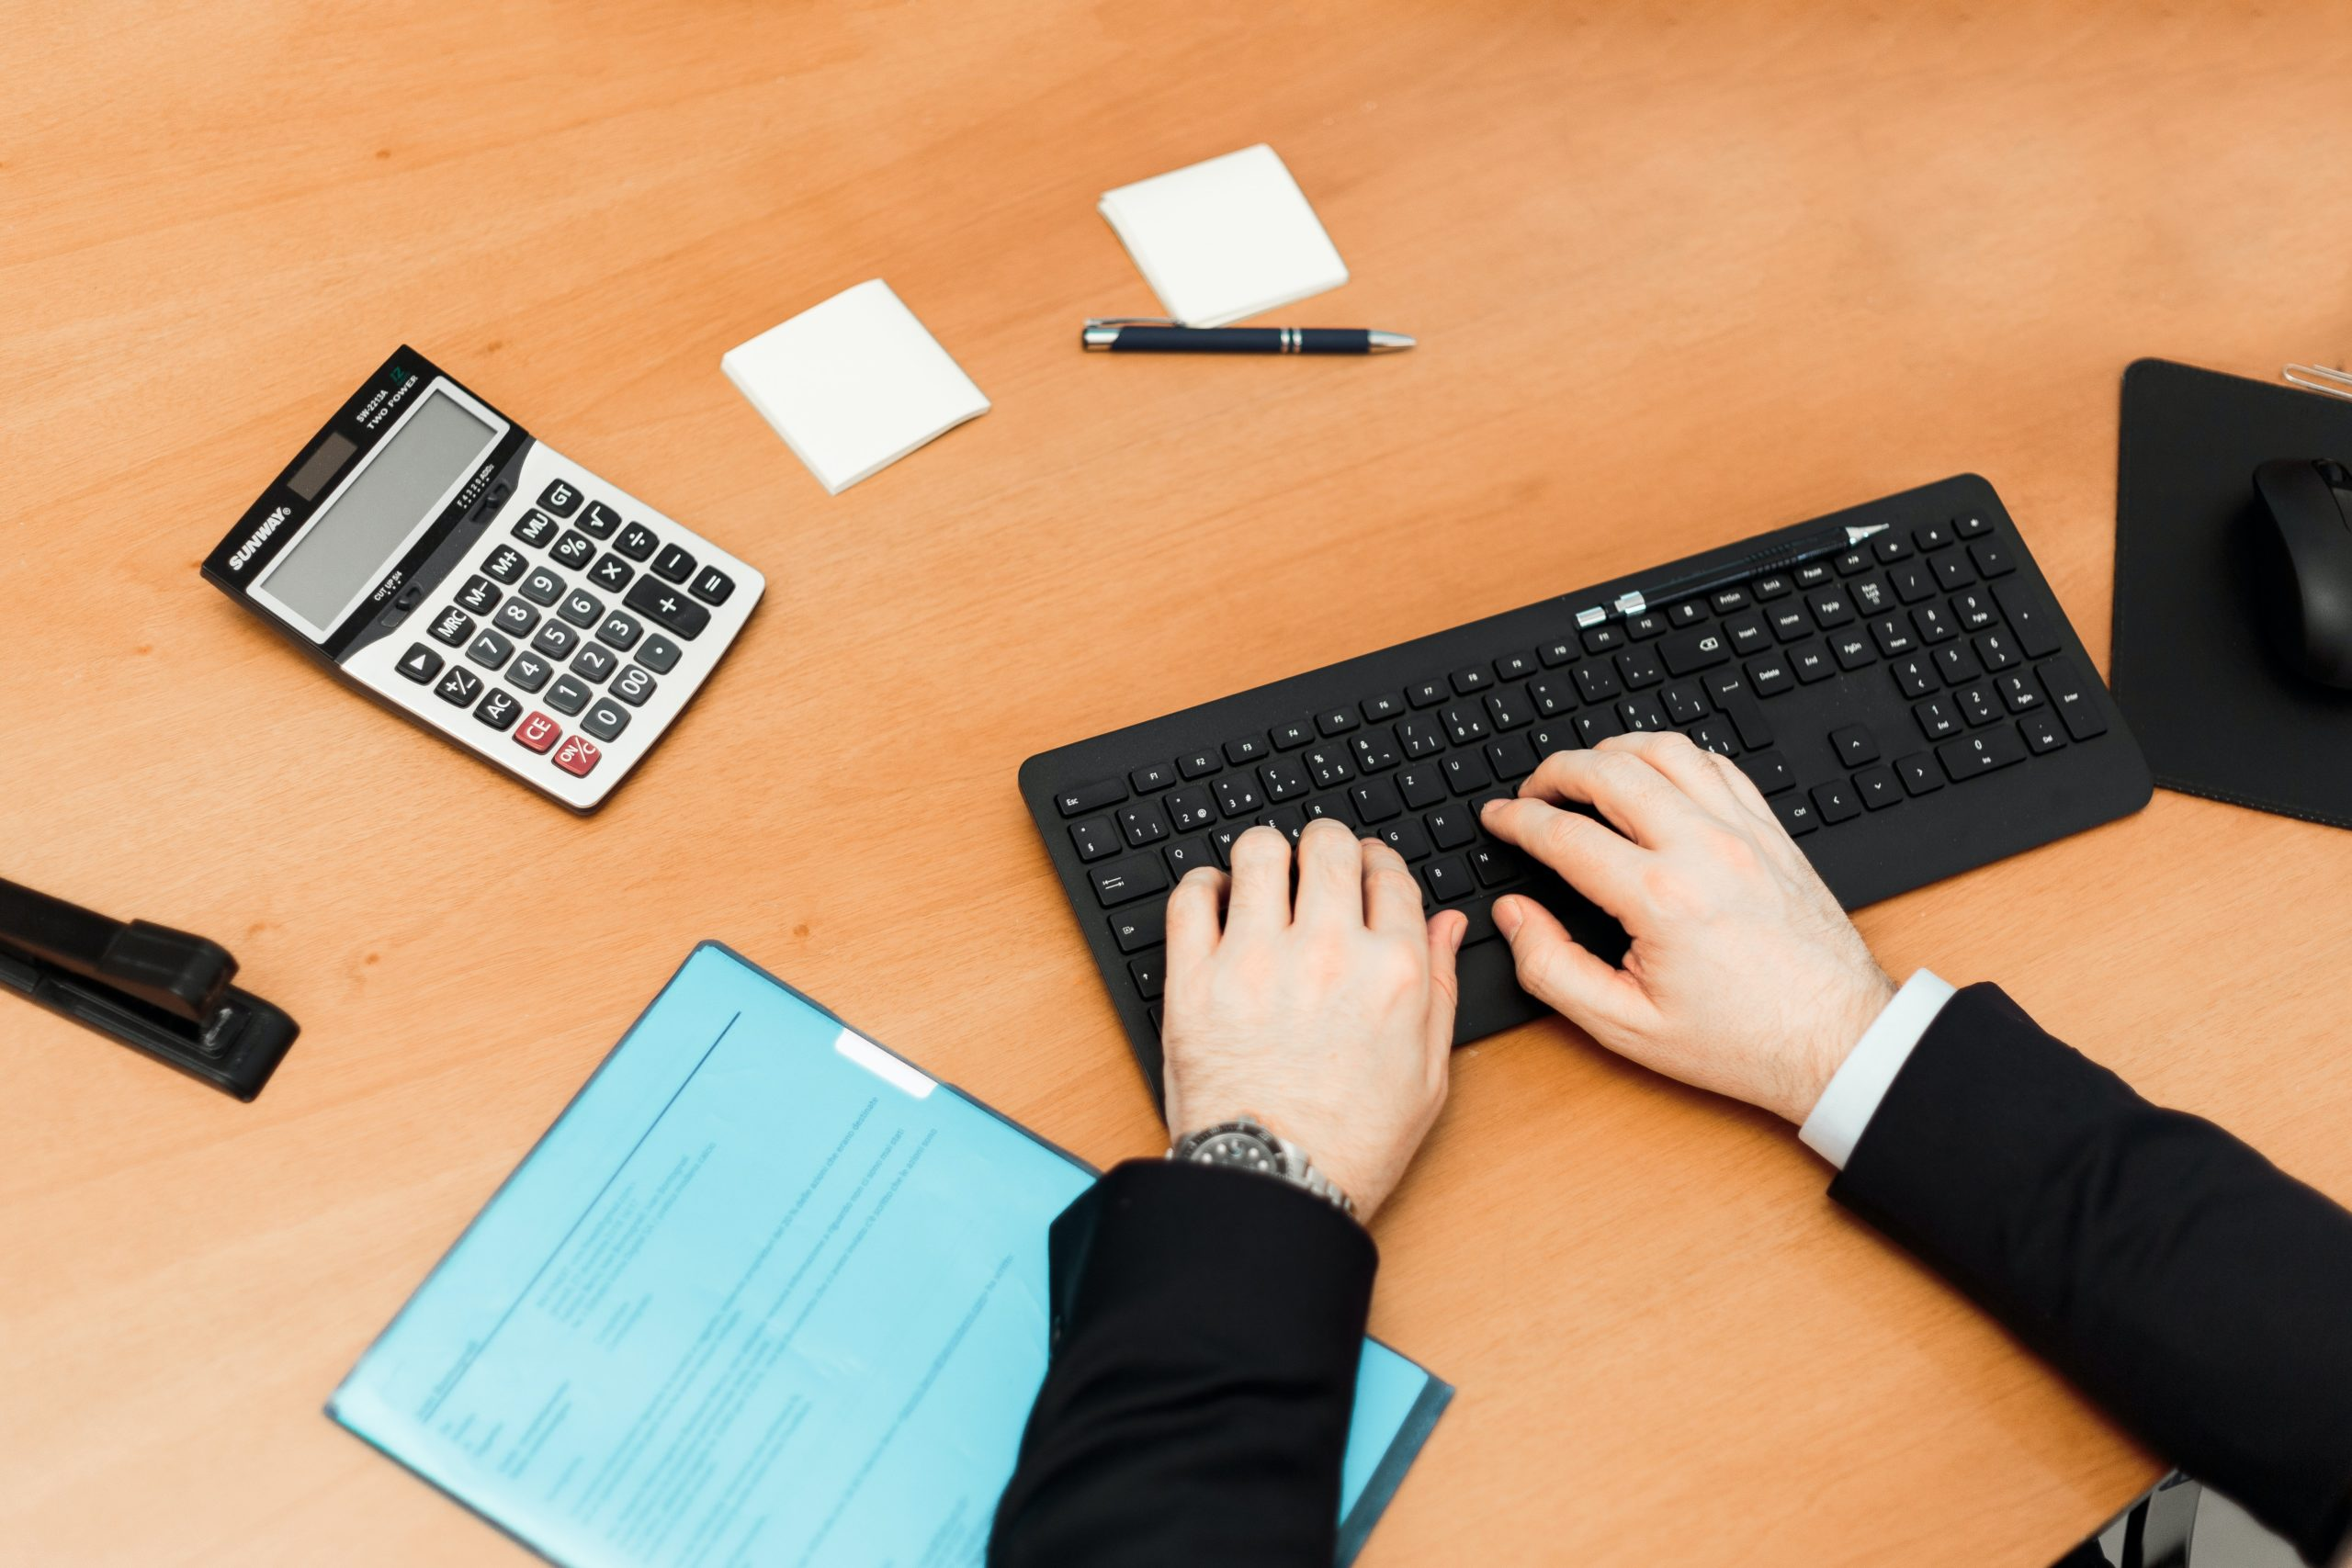 How do I calculate my redundancy entitlement if the company I work for has changed?